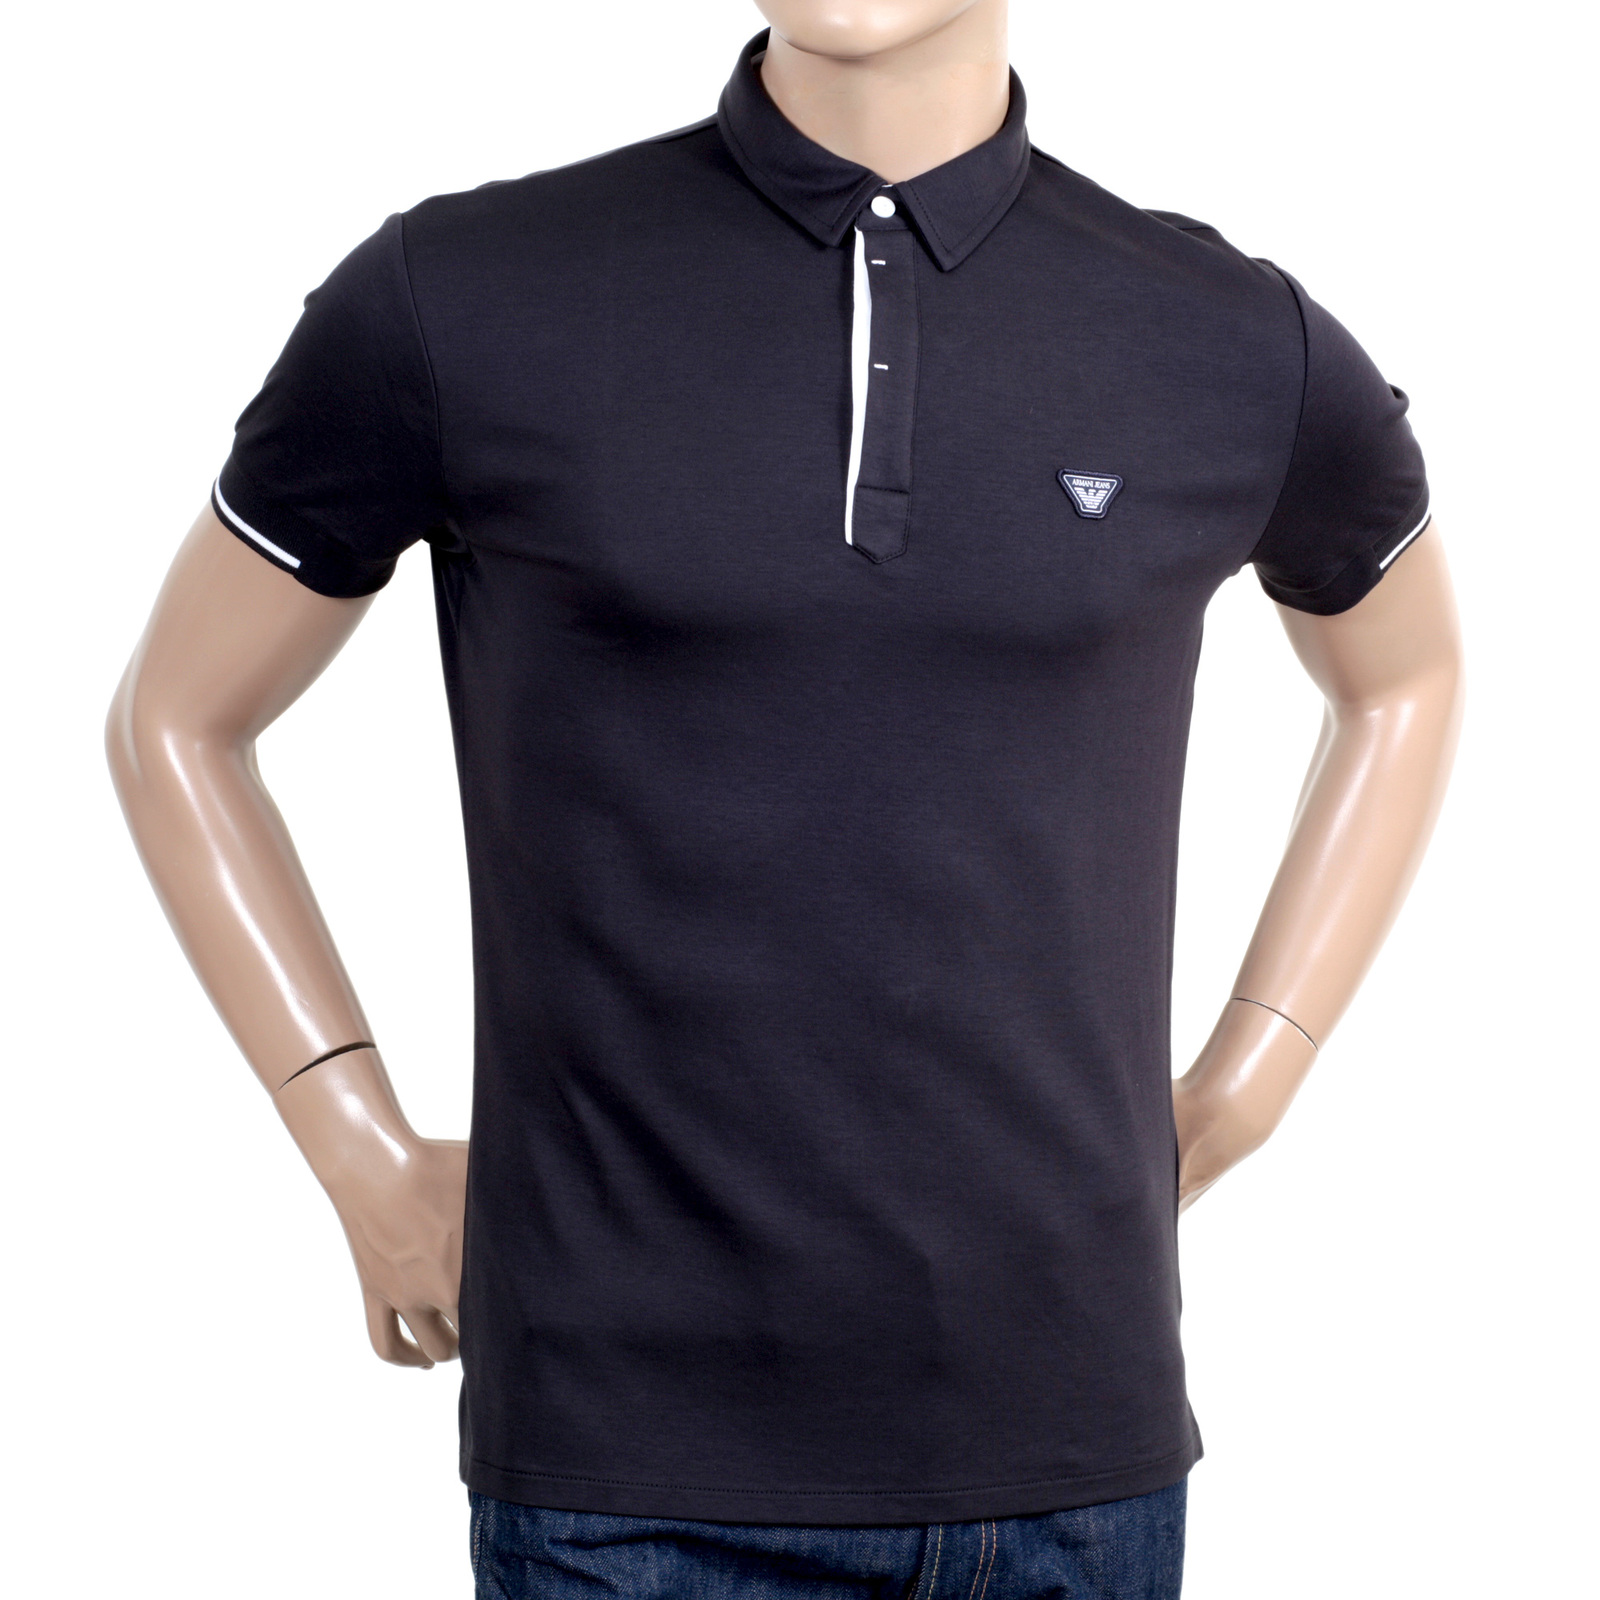 d4c9e1260 Armani Jeans Slimmer Fit Logo Embroidered Blue Polo Shirt for Men with  Ribbed Collar and Sleeve